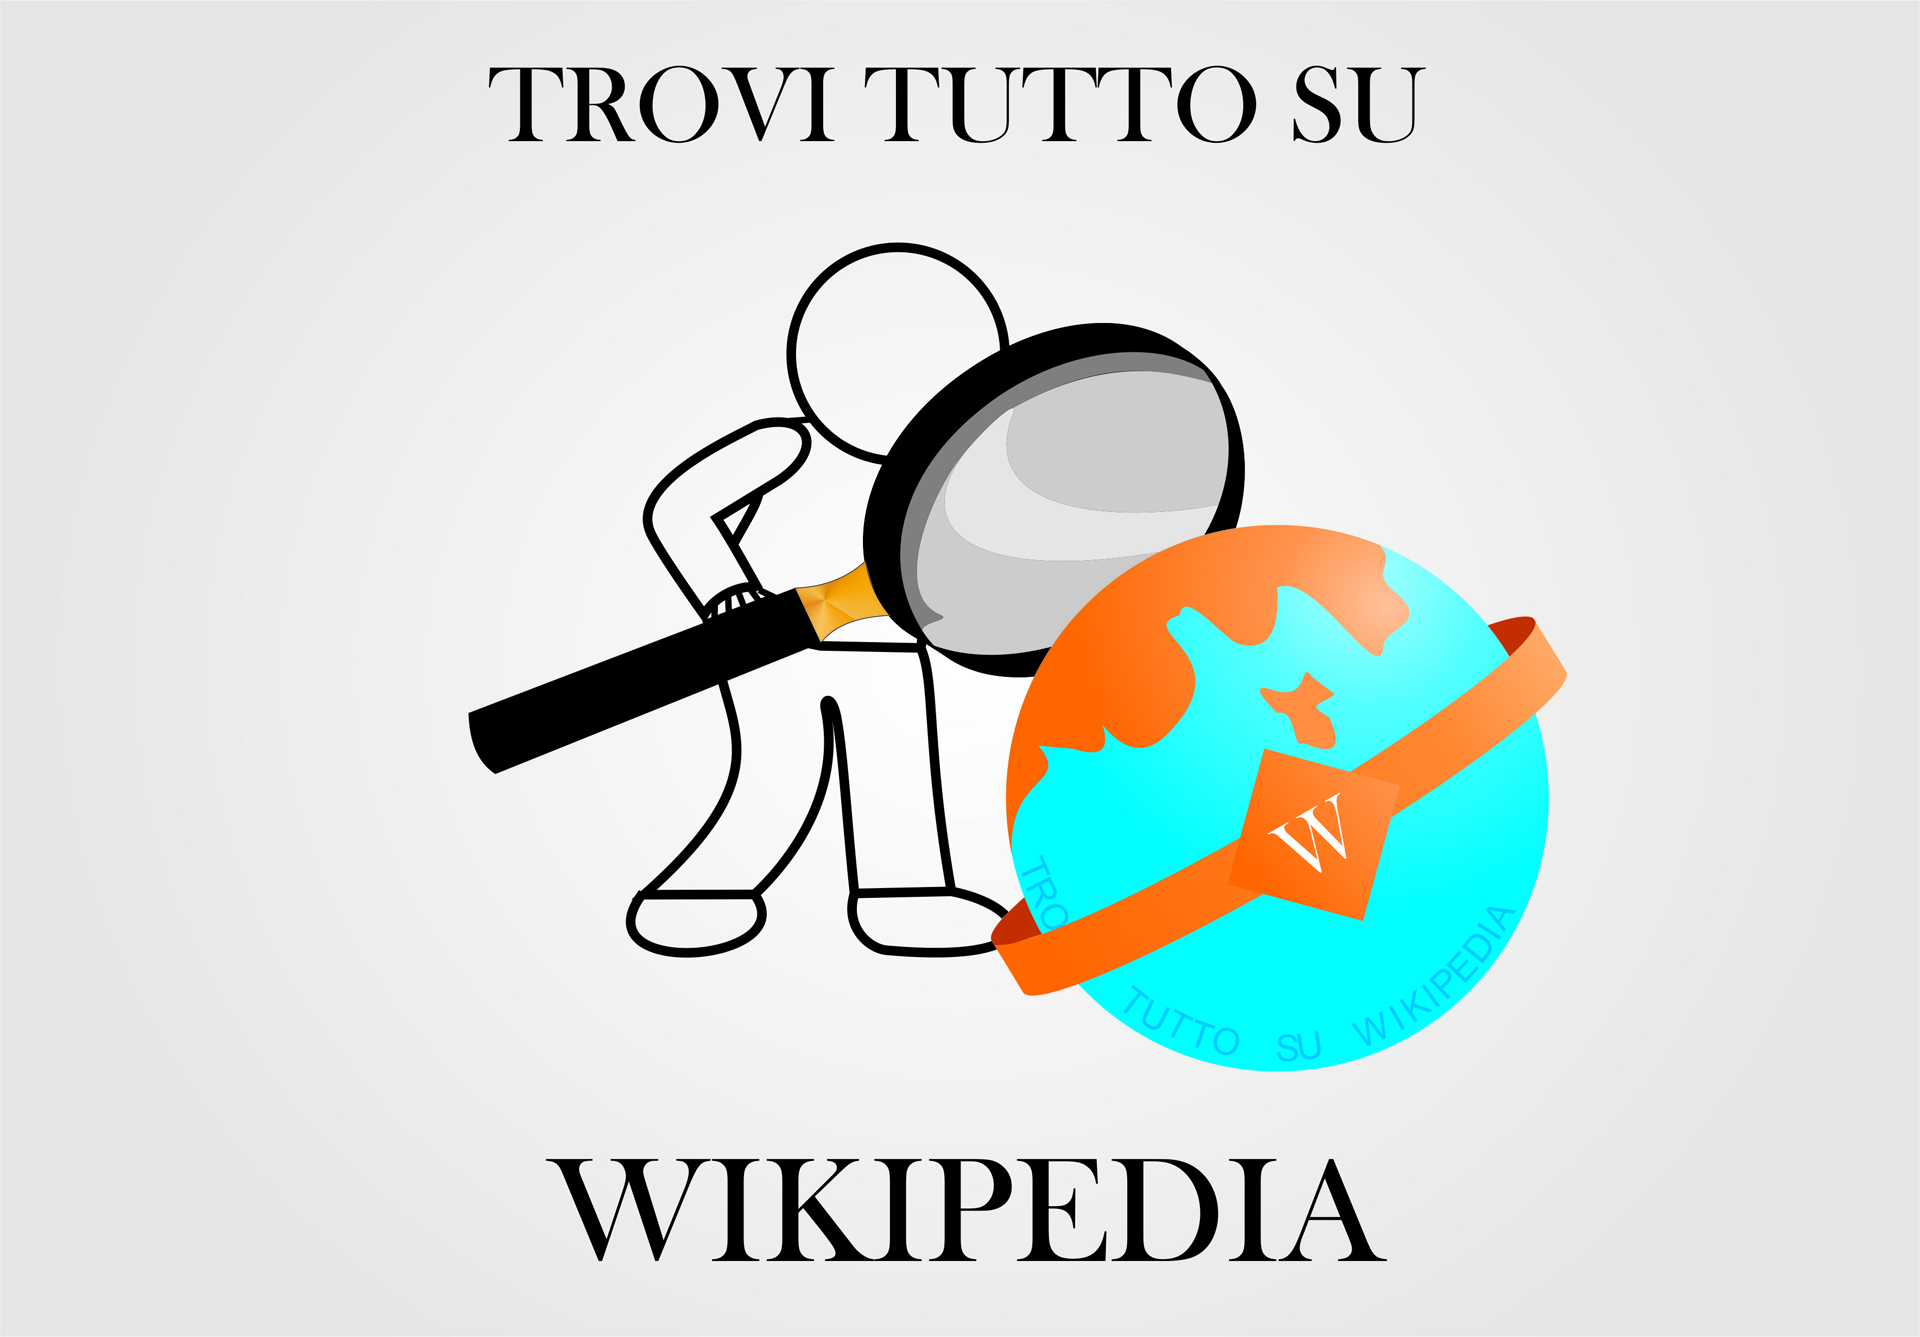 trovi tutto su wikipedia believe